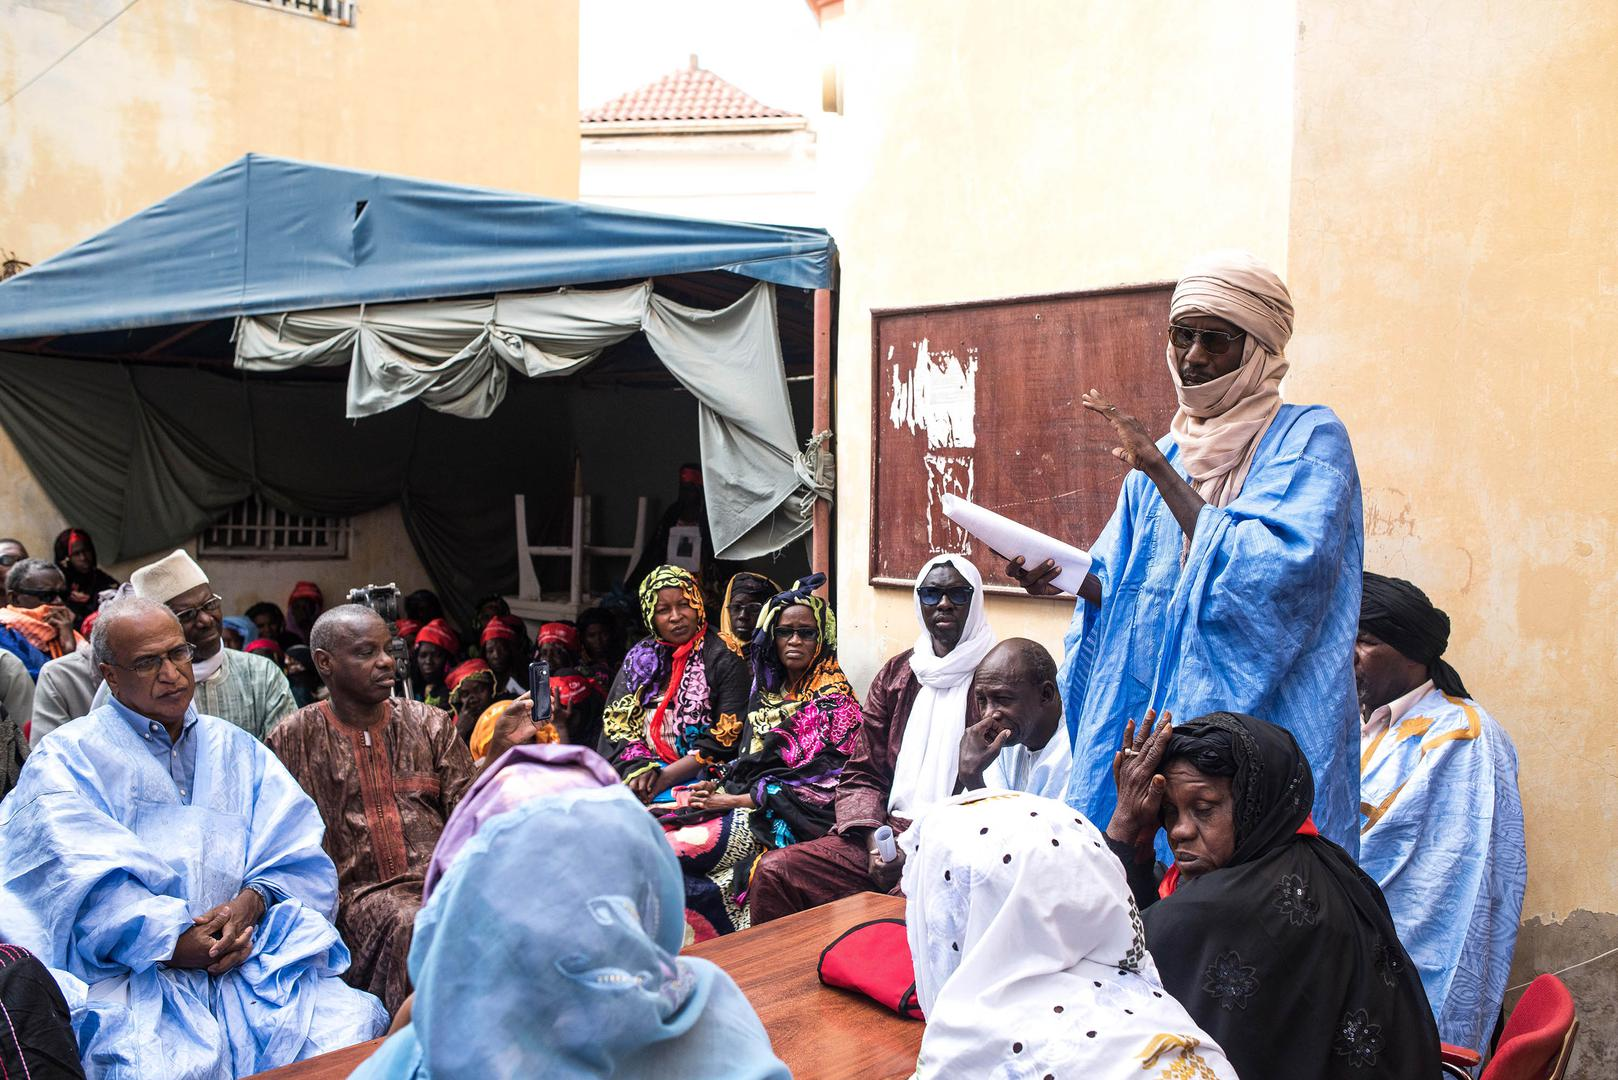 Meeting organized by the Collective of Widows and by the Collective of Civilian and Military Victims, on the Day of Commemoration of the Events of 1989-1990.  November 2016, Nouakchott.